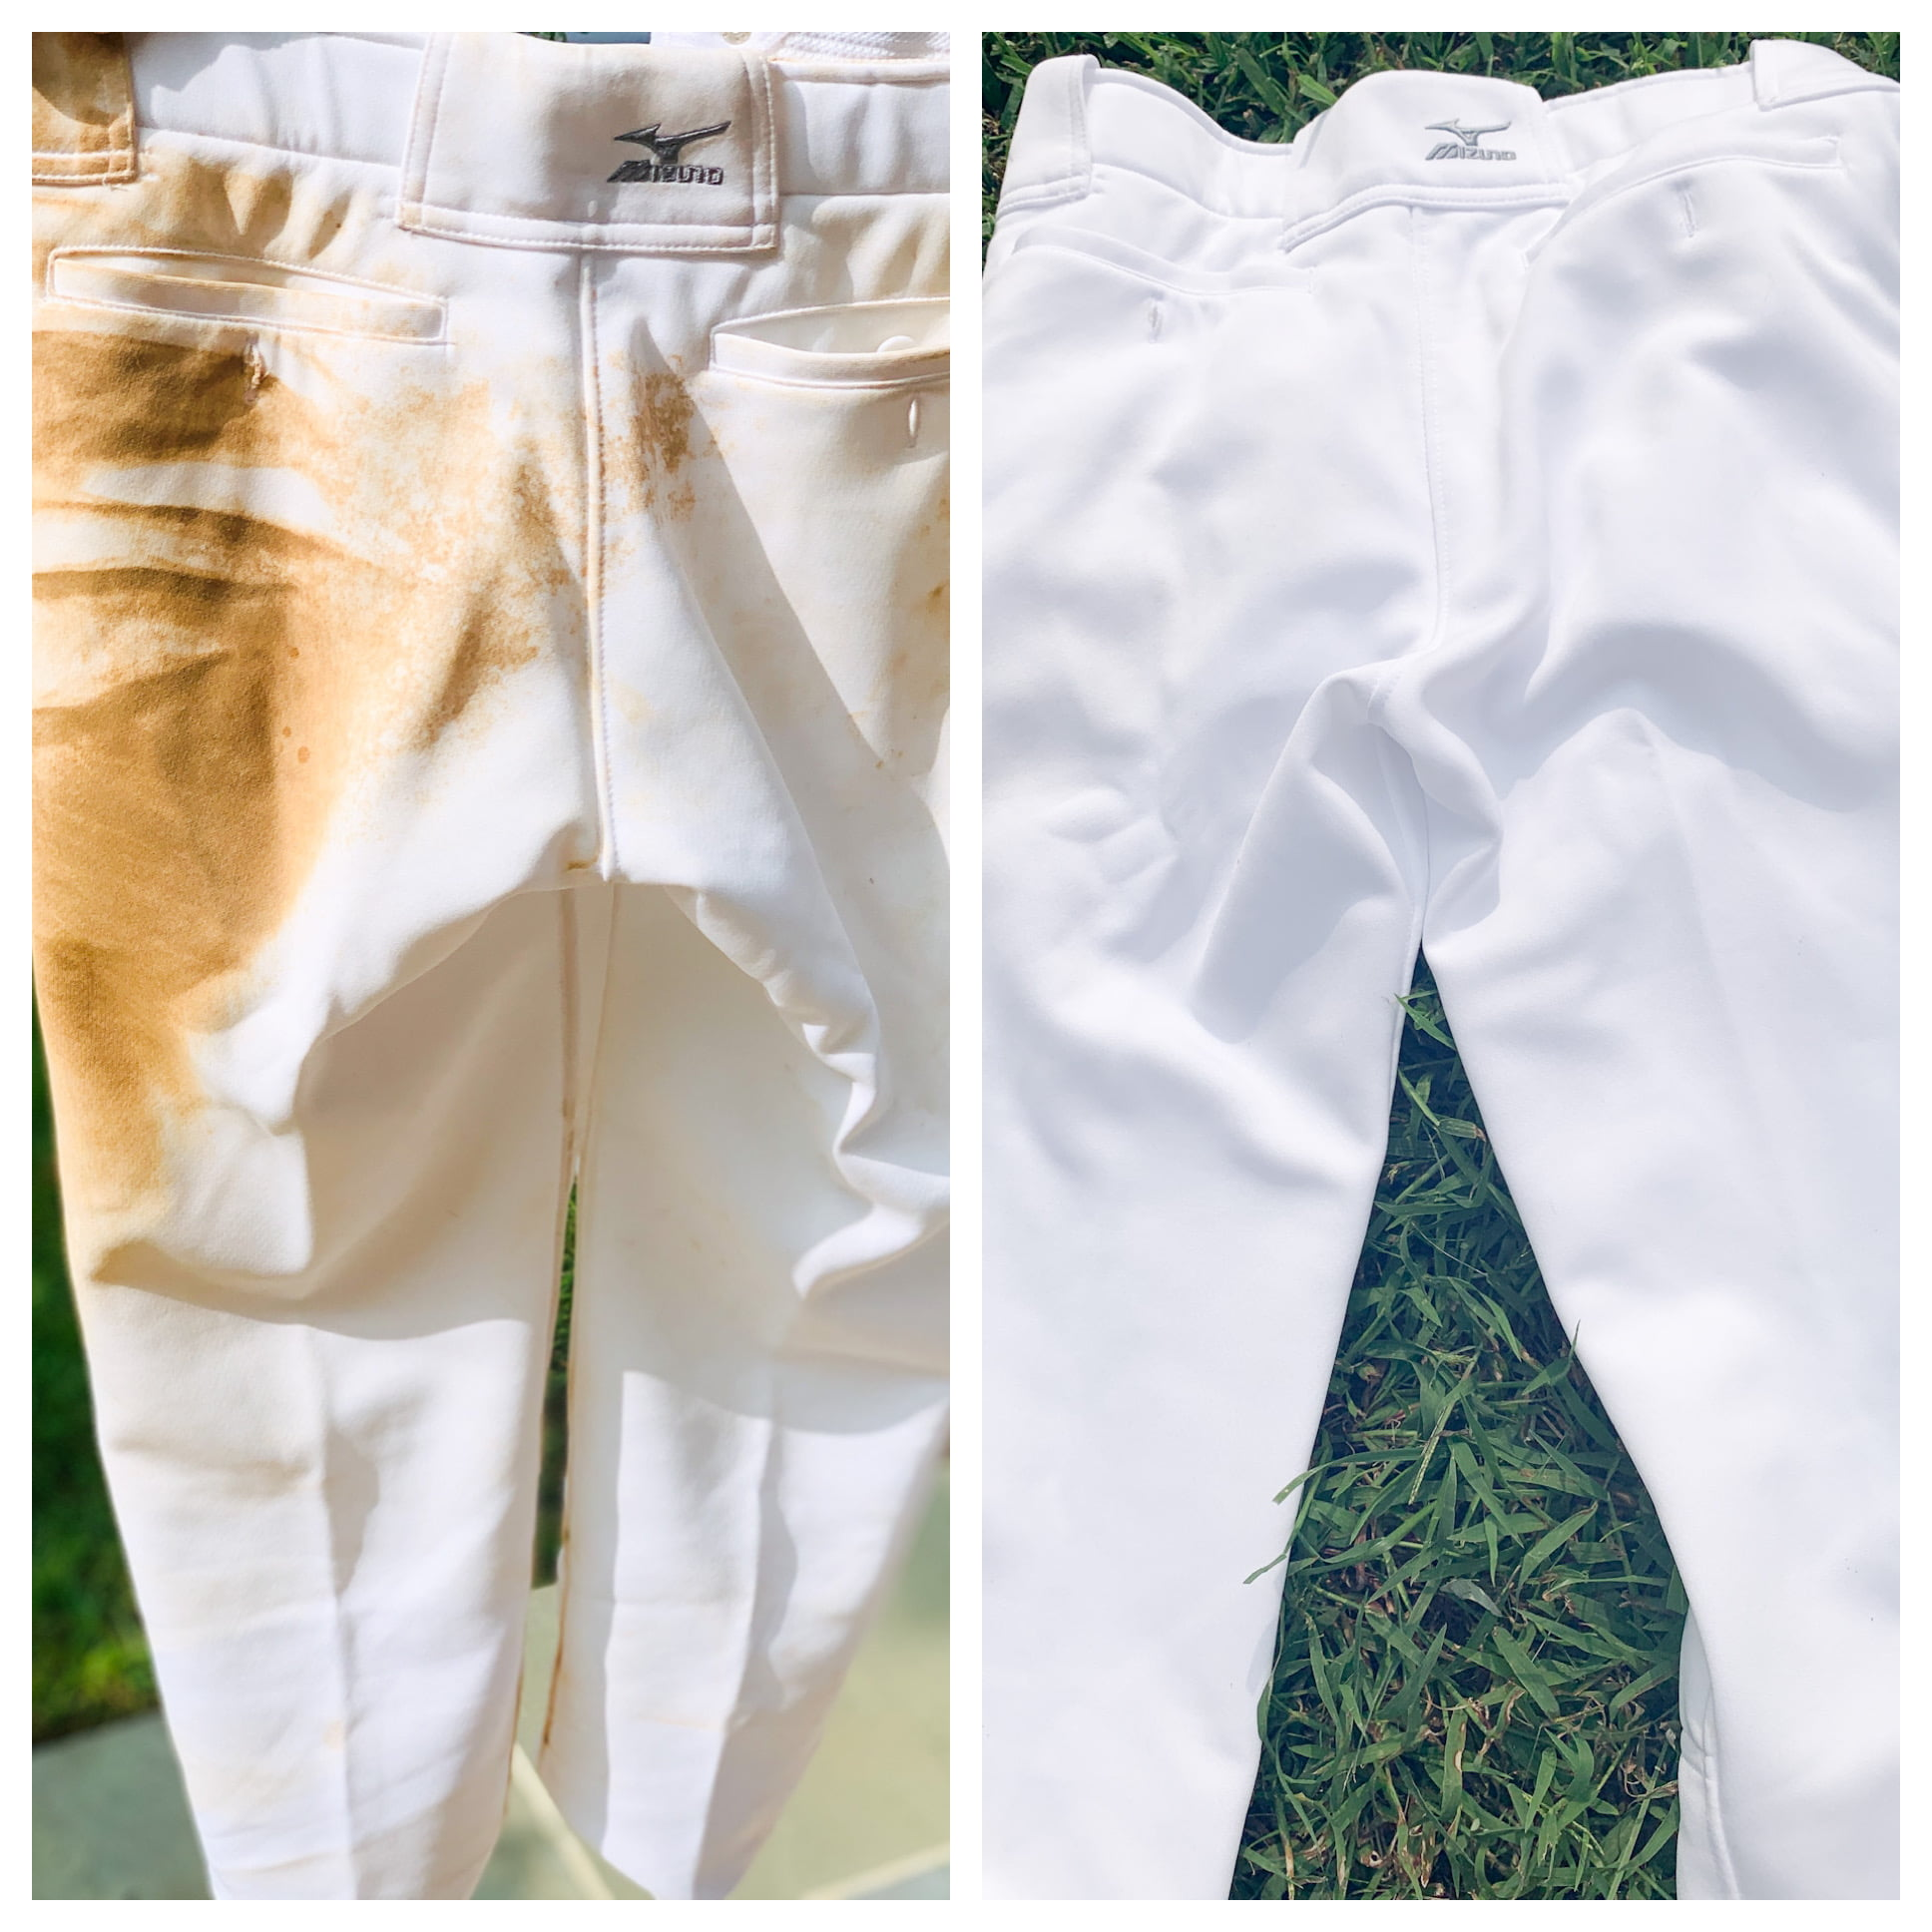 Best way to clean softball pants